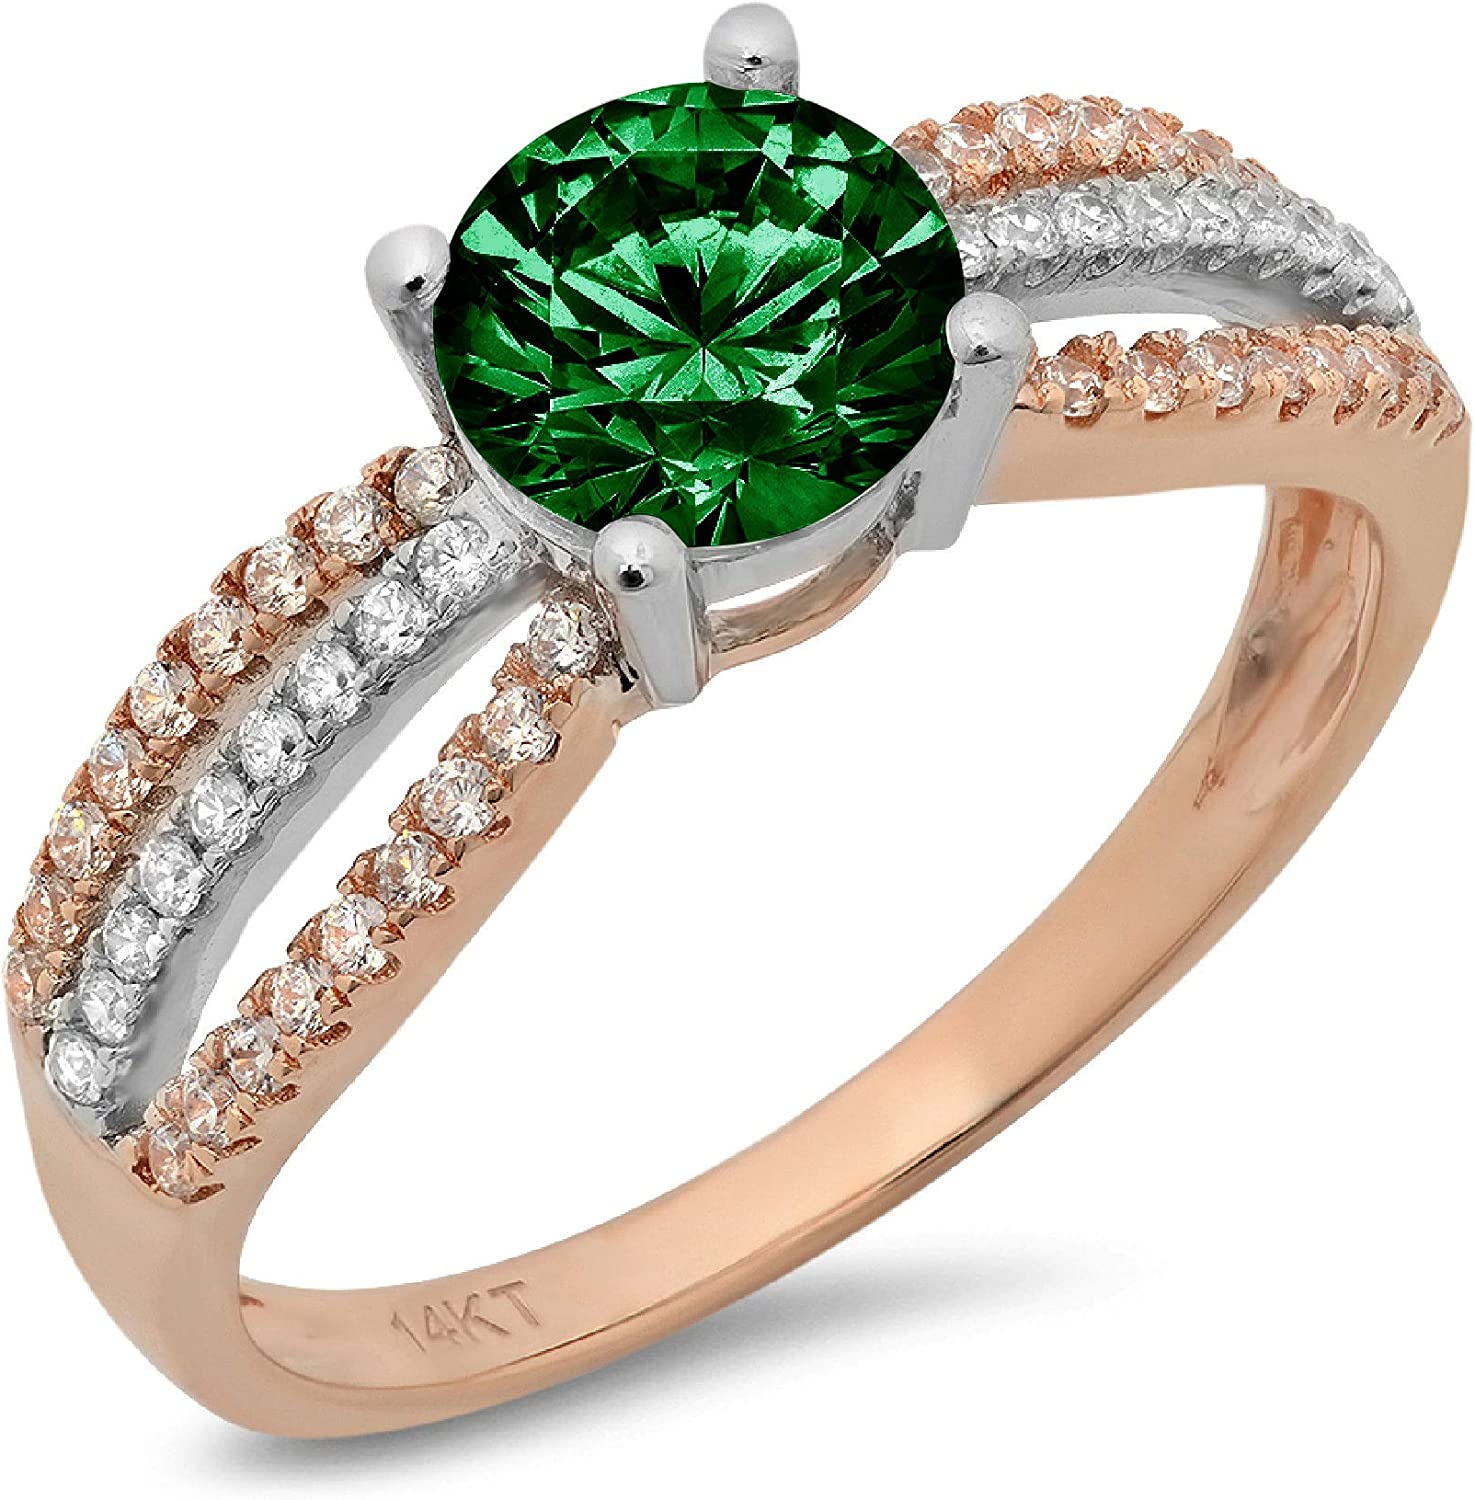 1.25 ct Round Cut Solitaire Accent Genuine Flawless Simulated Emerald Gemstone Engagement Promise Statement Anniversary Bridal Wedding Accent Ring Solid 18K 2 tone Gold